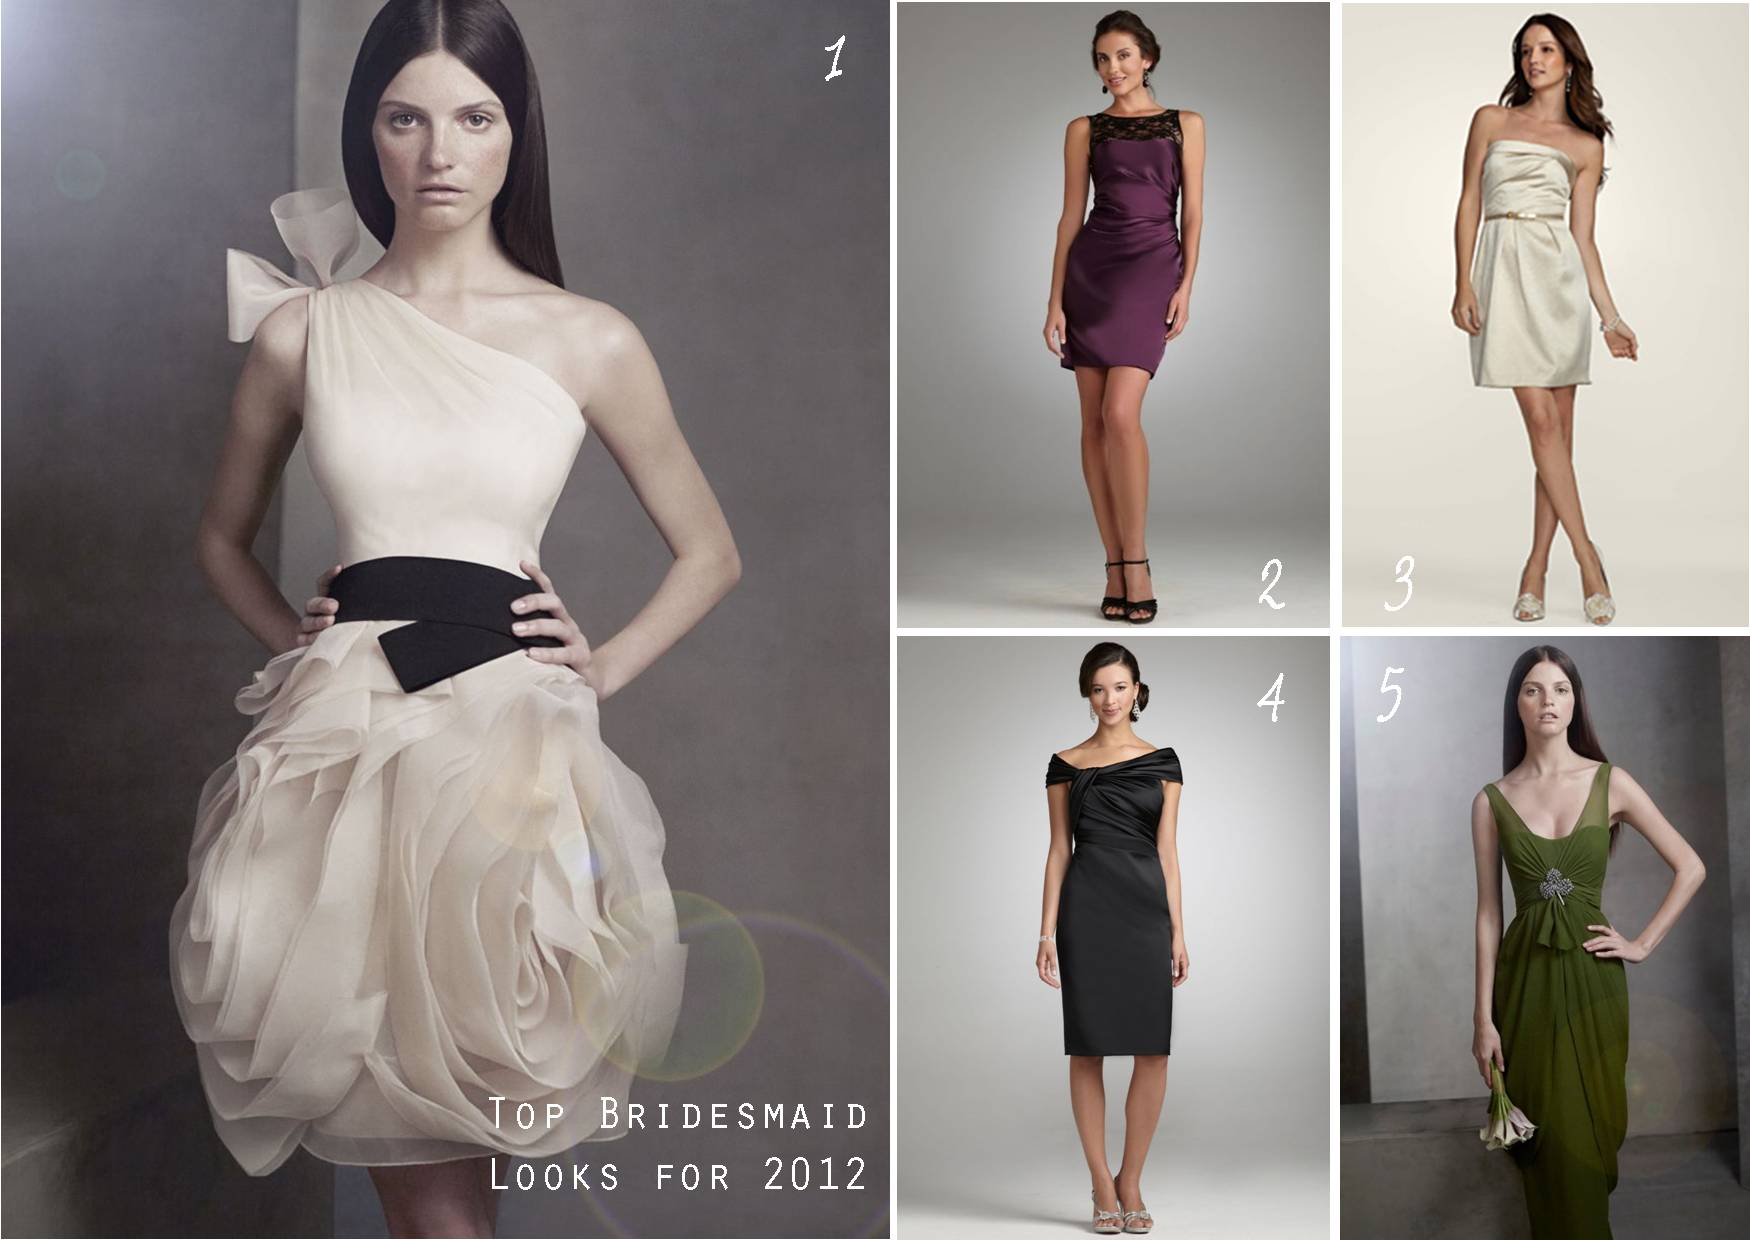 bridesmaid dresses 2012 - Contemporary Bridesmaids Dresses